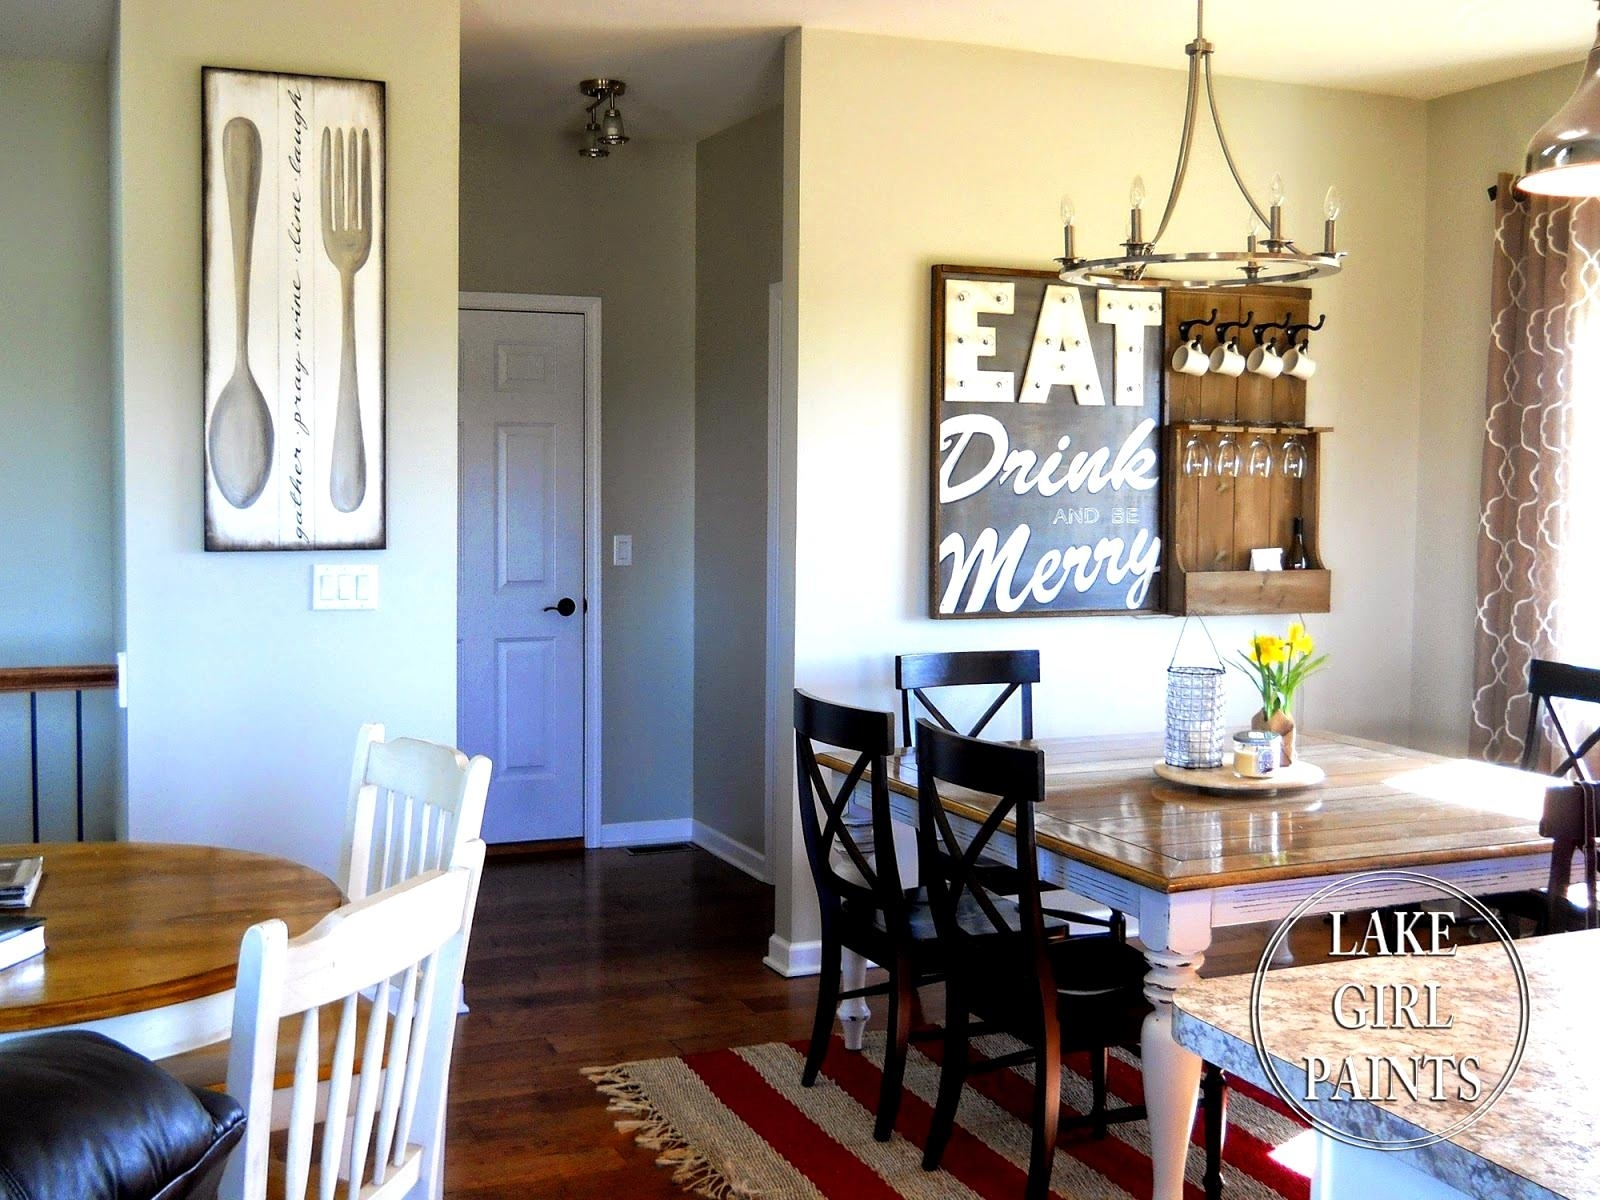 Awesome Kitchen Canvas Wall Art Dining Room Ideas Wall Pertaining To Latest Canvas Wall Art For Dining Room (View 11 of 15)